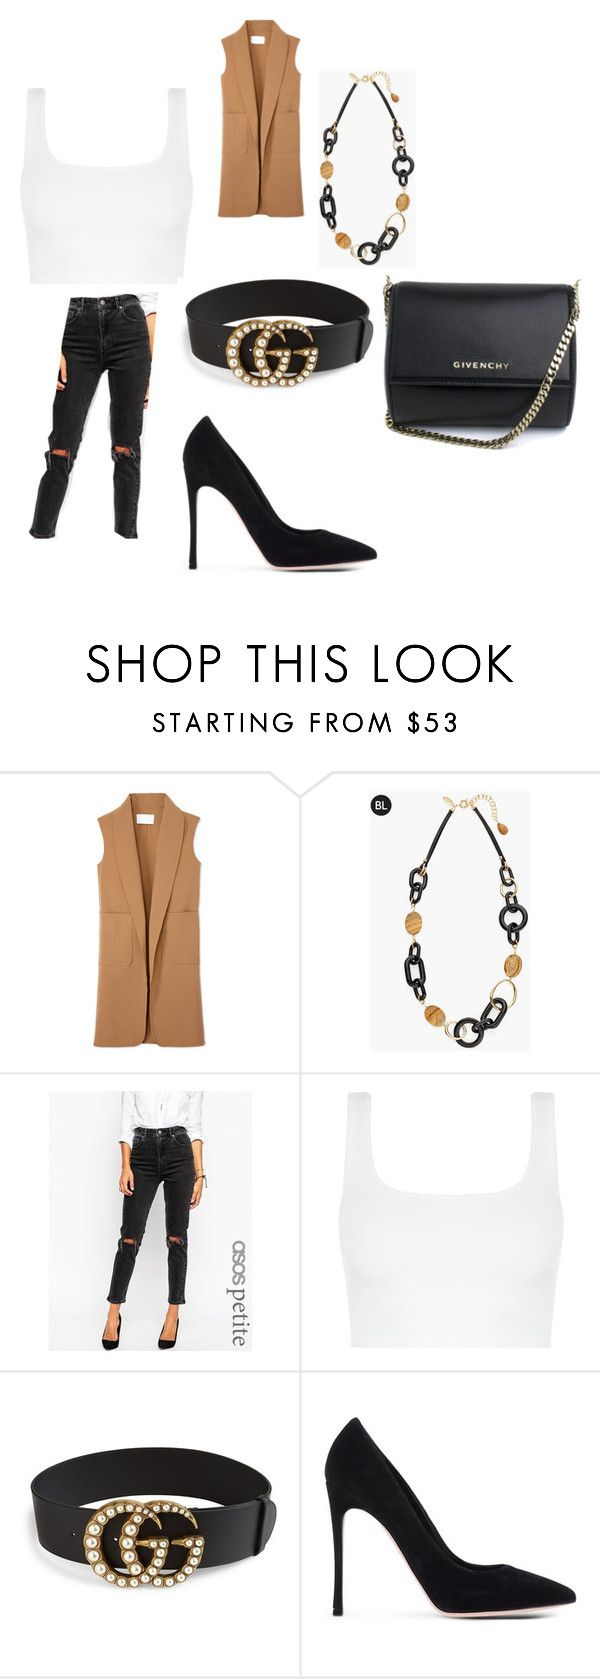 """""""Untitled #1365"""" by alessiaaaaaaaaa ❤ liked on Polyvore featuring Alexander Wang, Chico's, ASOS, Gucci, Gianvito Rossi and Givenchy"""